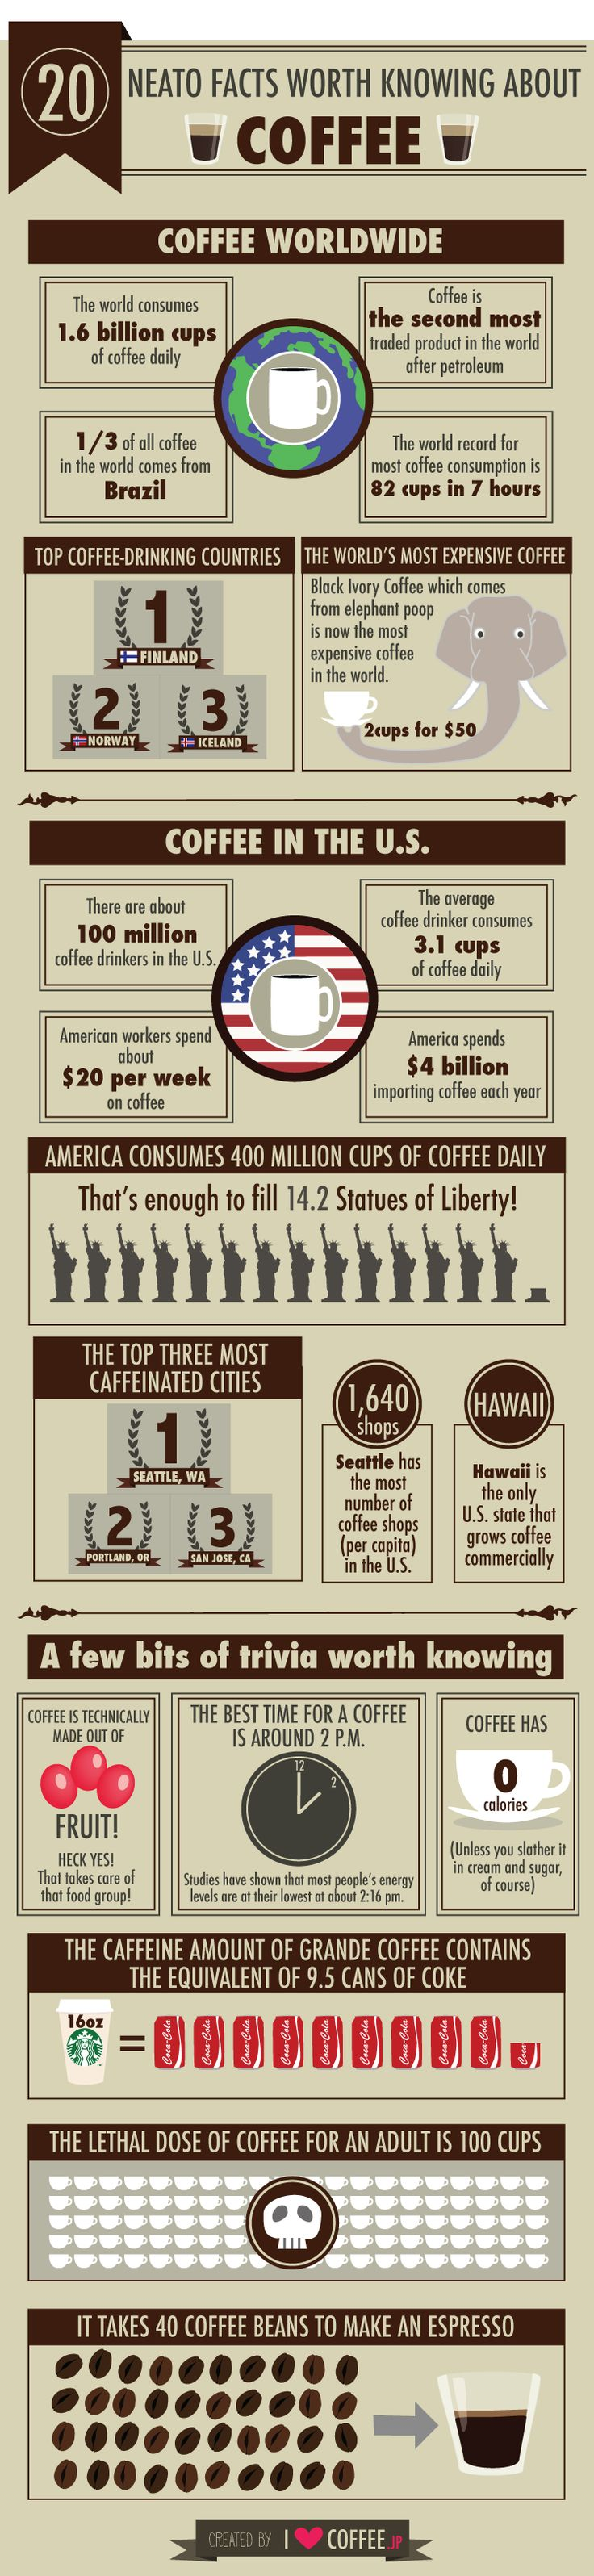 Did you know that coffee is the second most traded product in the world after petroleum? Or that 1/3 of coffee comes from Brazil? Here are 18 more facts...